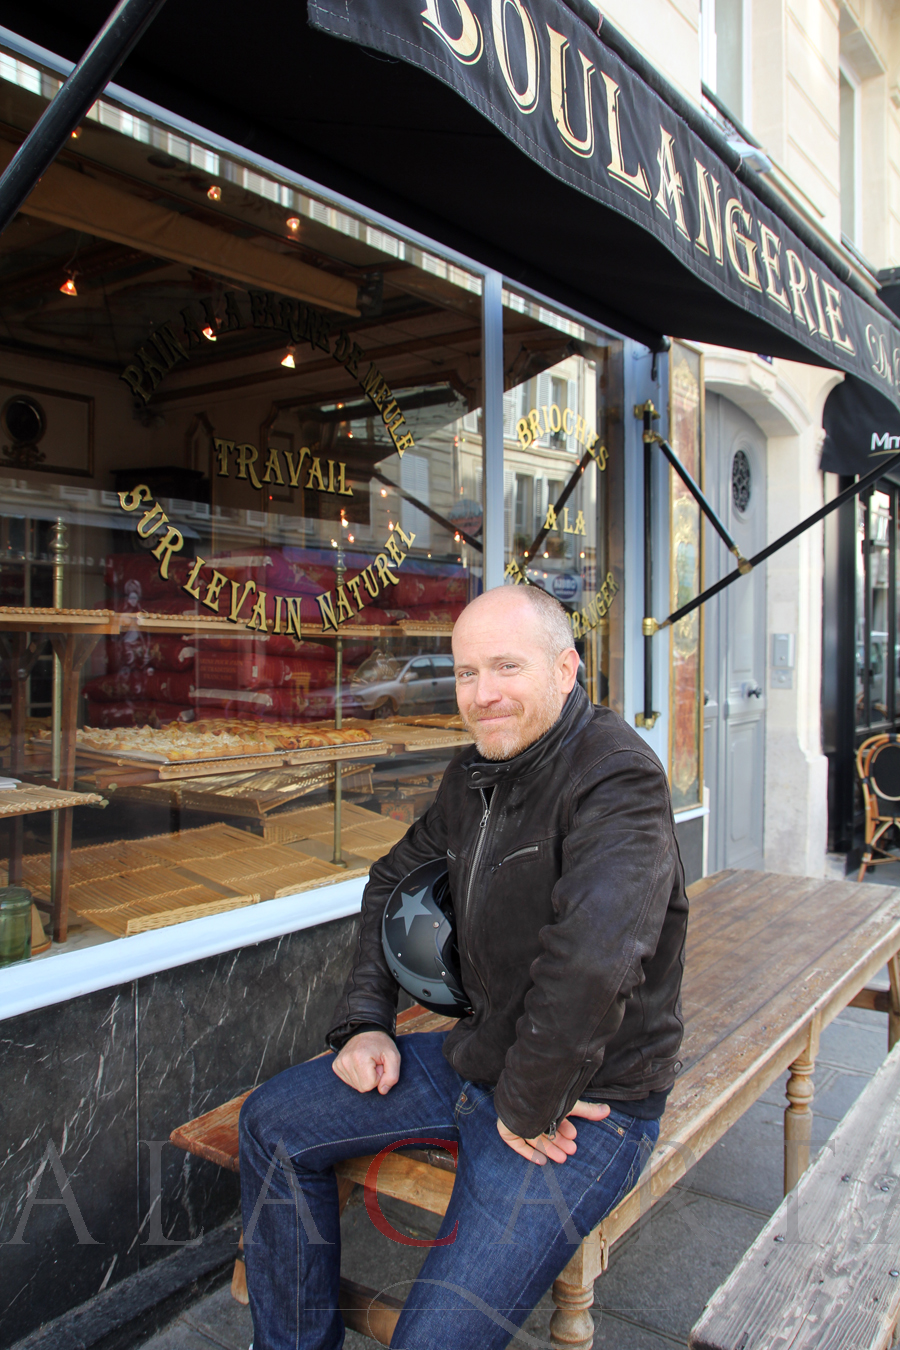 Vasseur Best Boulanger Paris